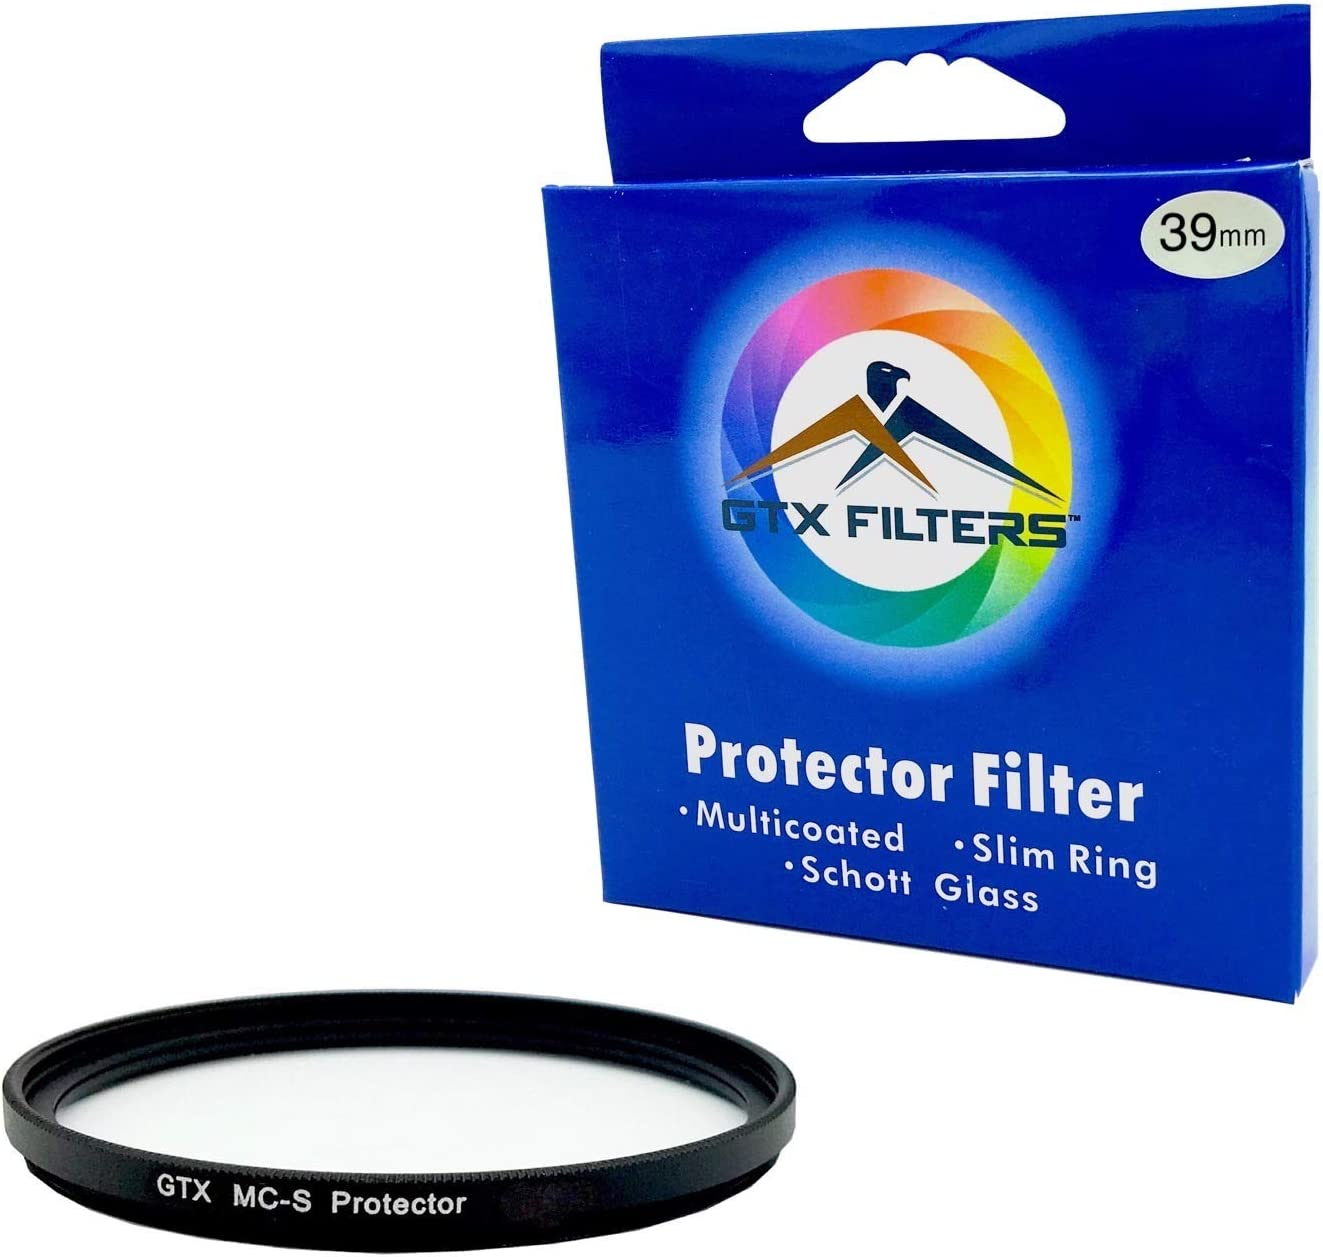 Includes: Schott Glass Protector and CPL Lens Filter Set Lens Cap Sunset Foto 39mm Lens Filter and Accessory Kit Lens Cleaner Kit